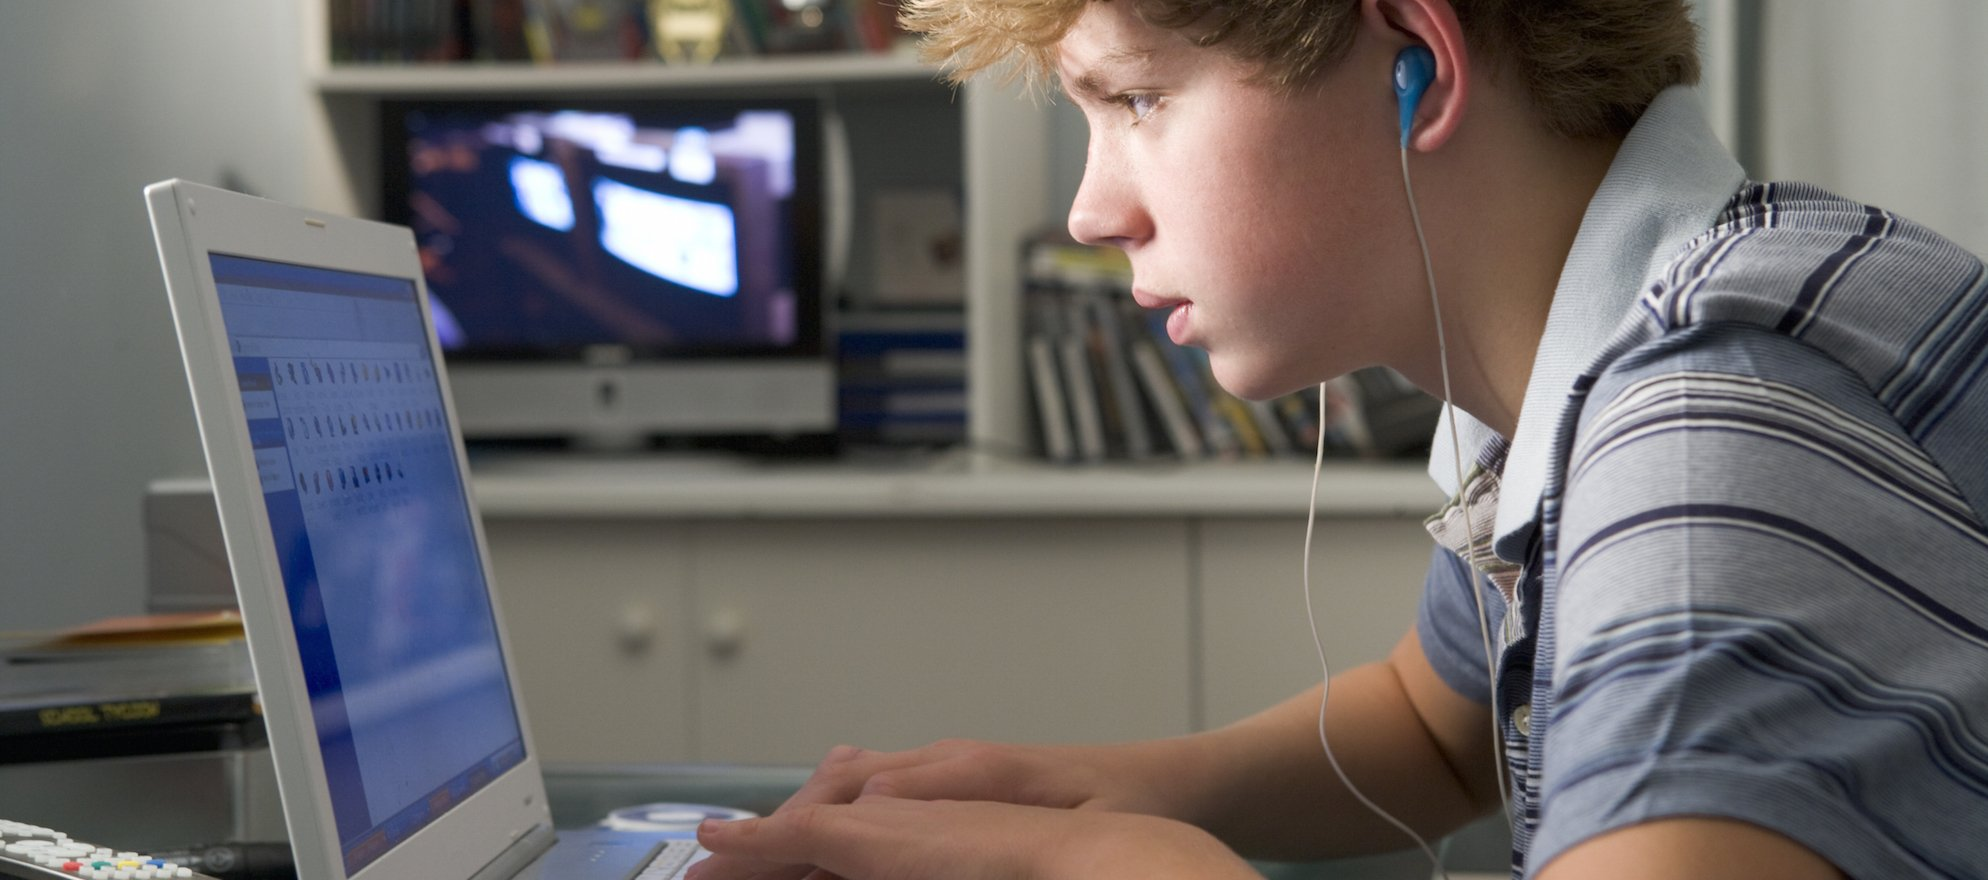 Opinion: What do Upstream, broker portals and the hacker kid in the basement have in common?